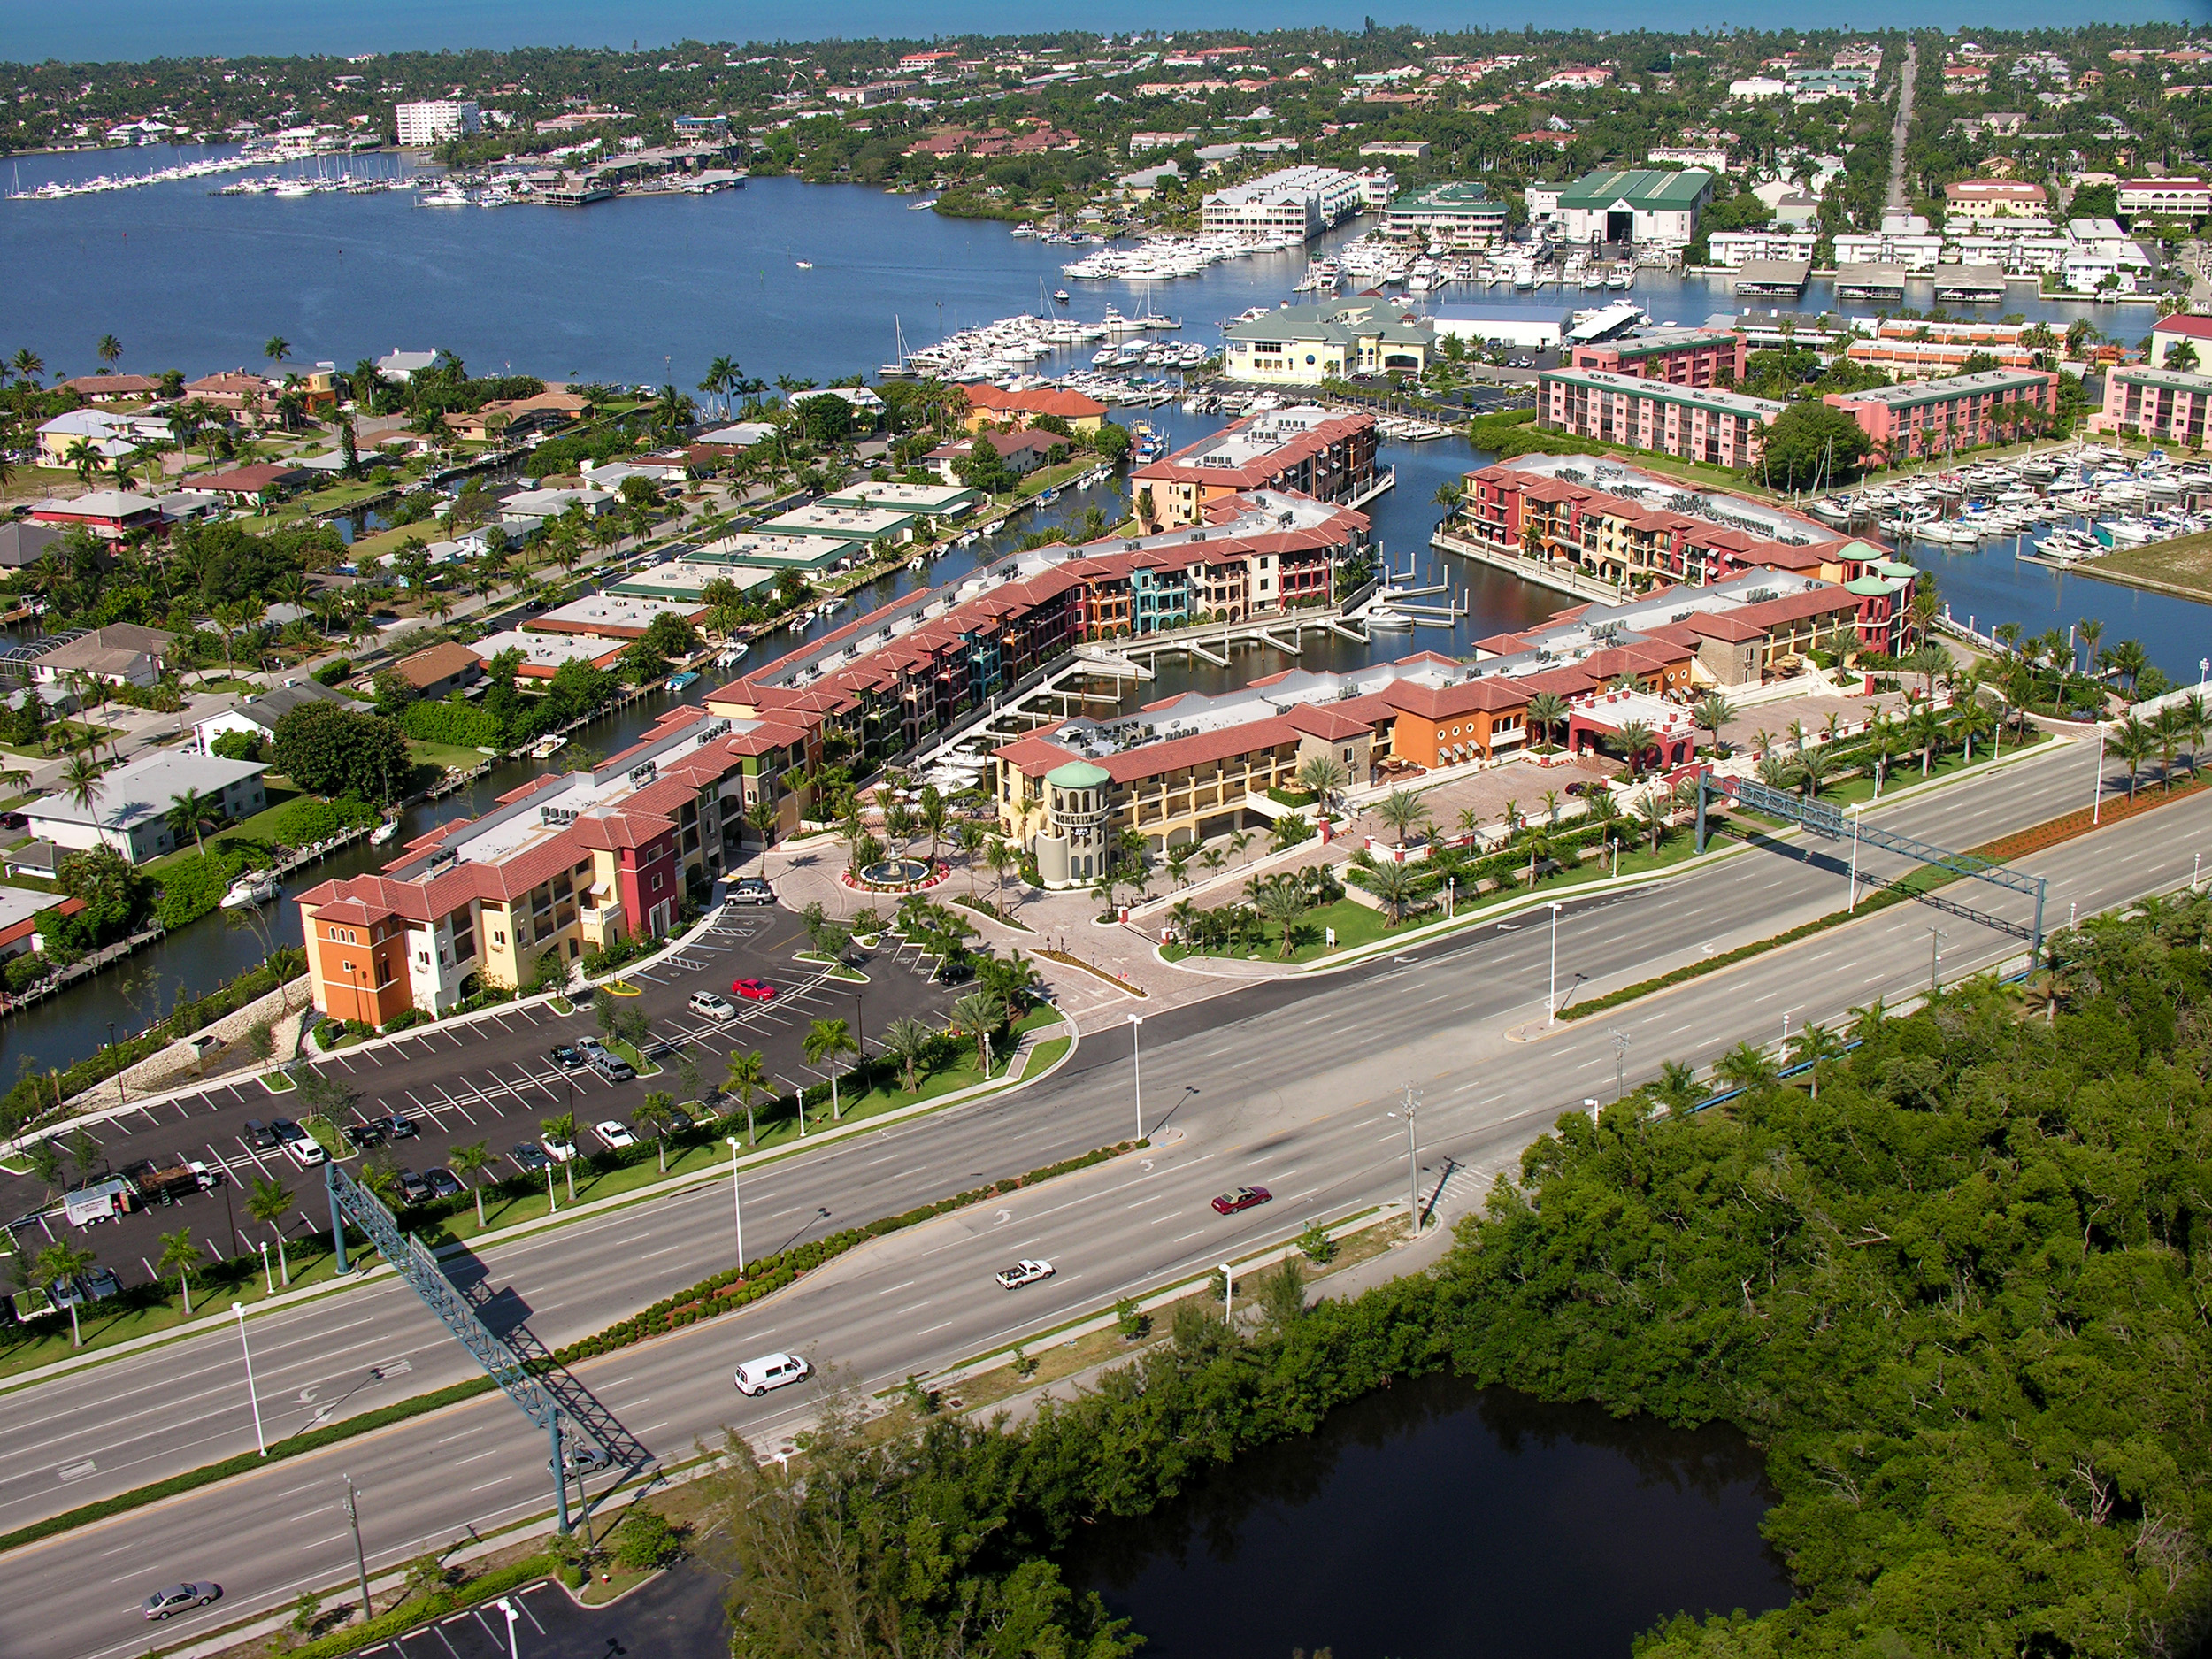 Naples Bay Resort Aerial.jpg